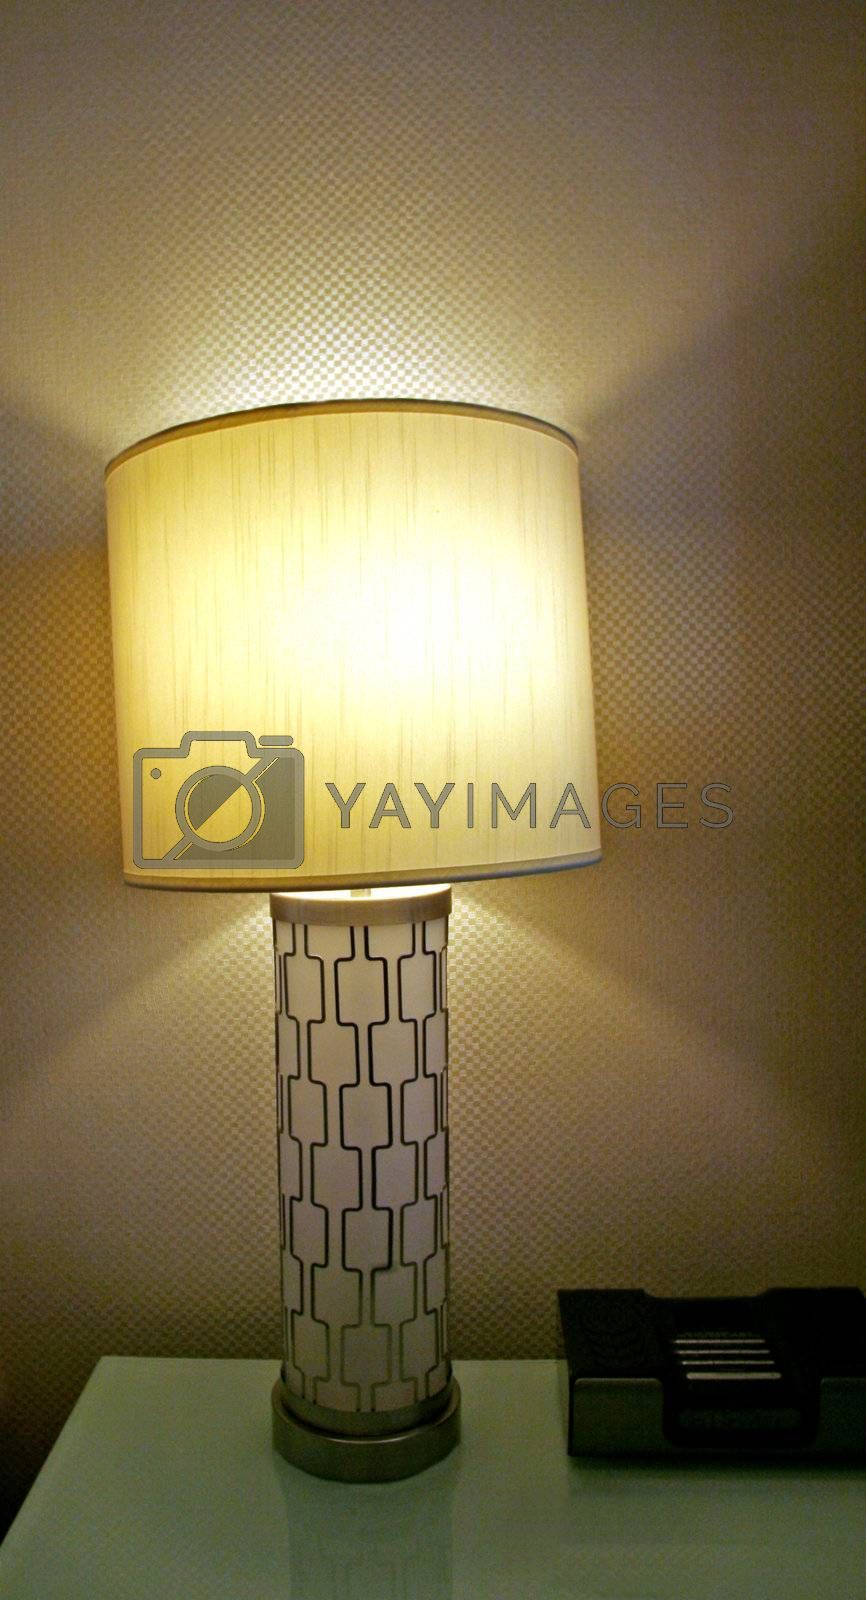 Royalty free image of Modern Light Fixture by Moonb007